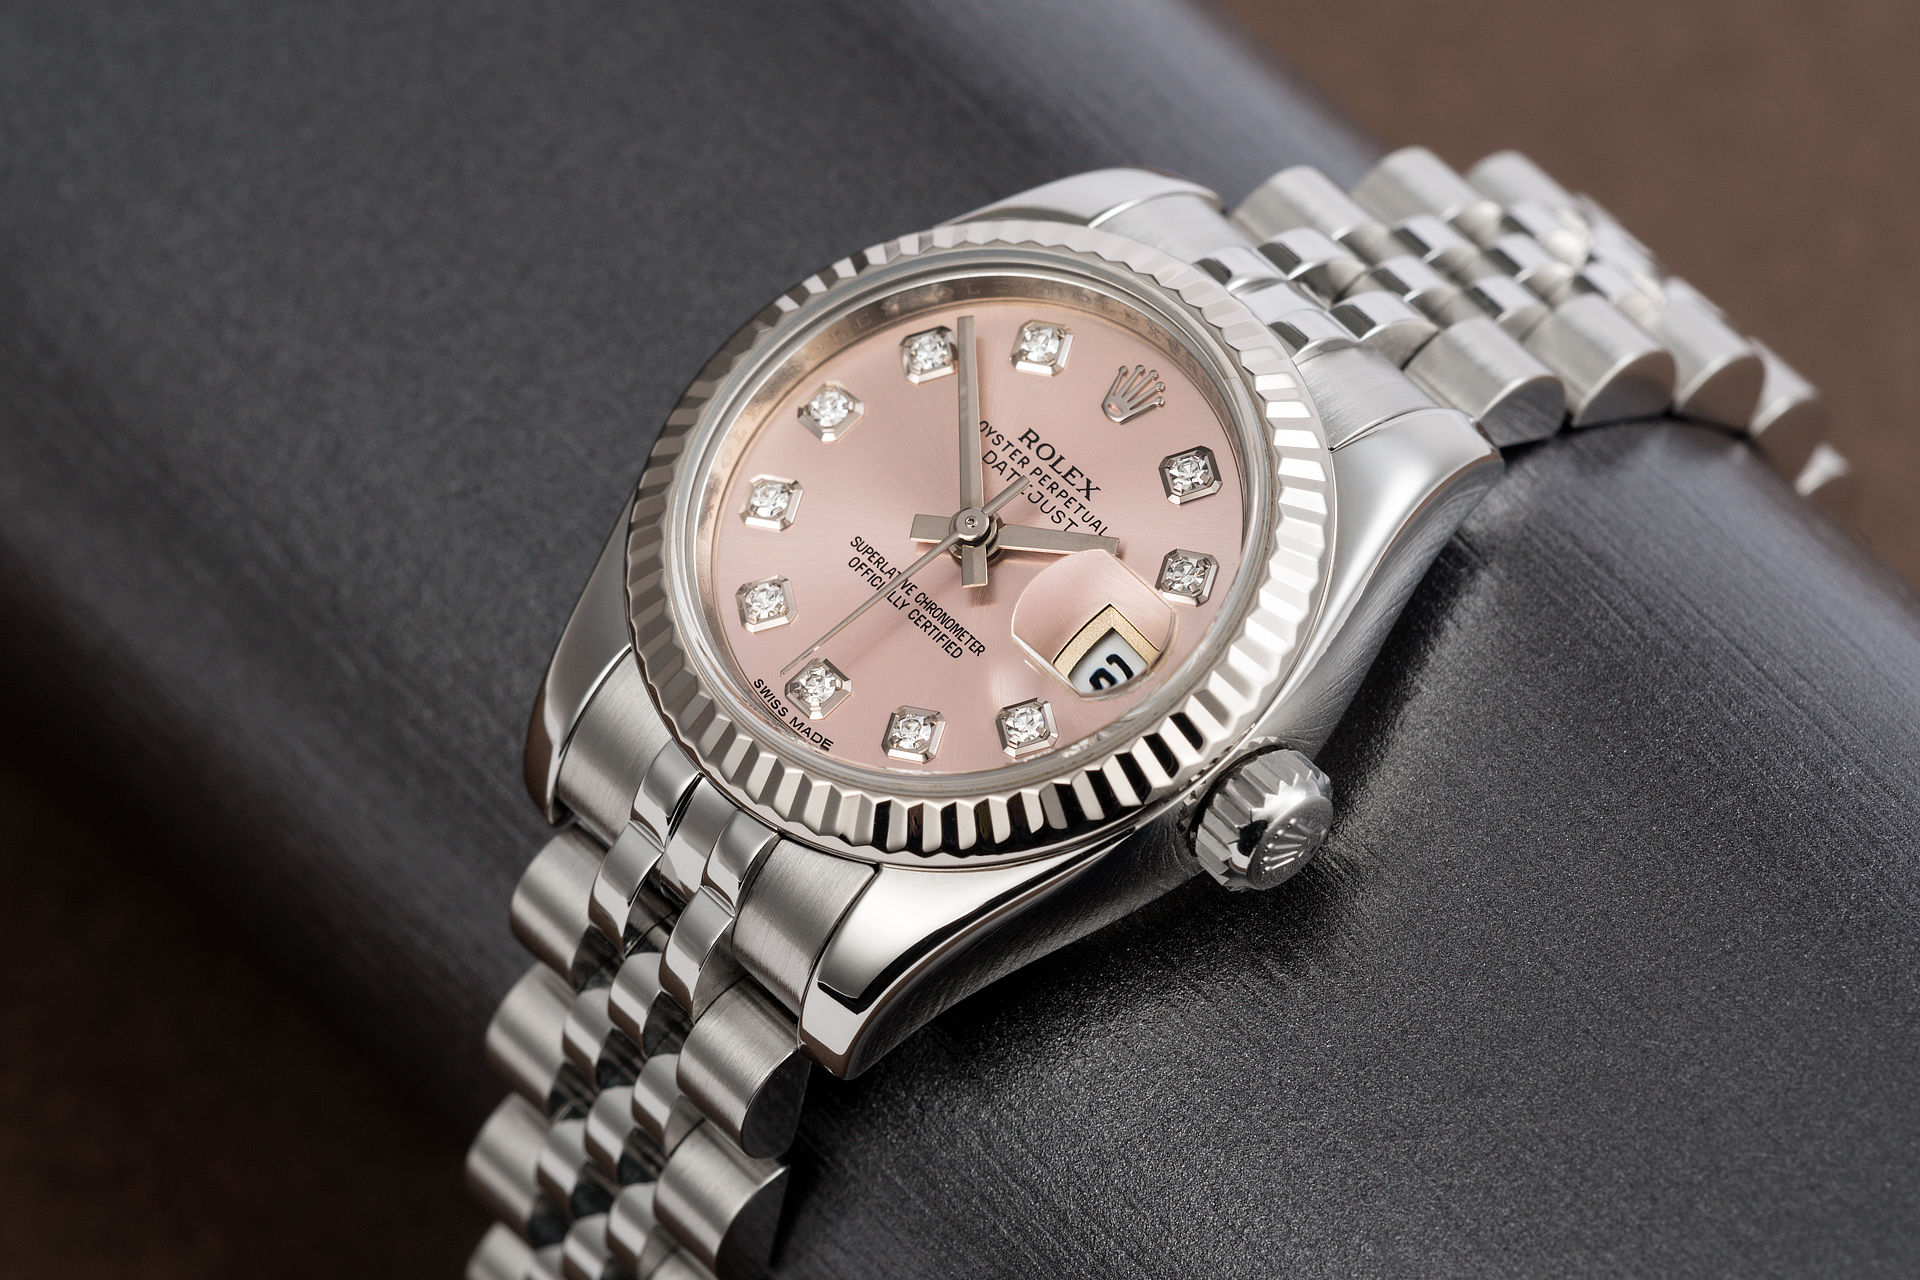 ref 179174 | Diamond Dial 'Full Set' | Rolex Datejust